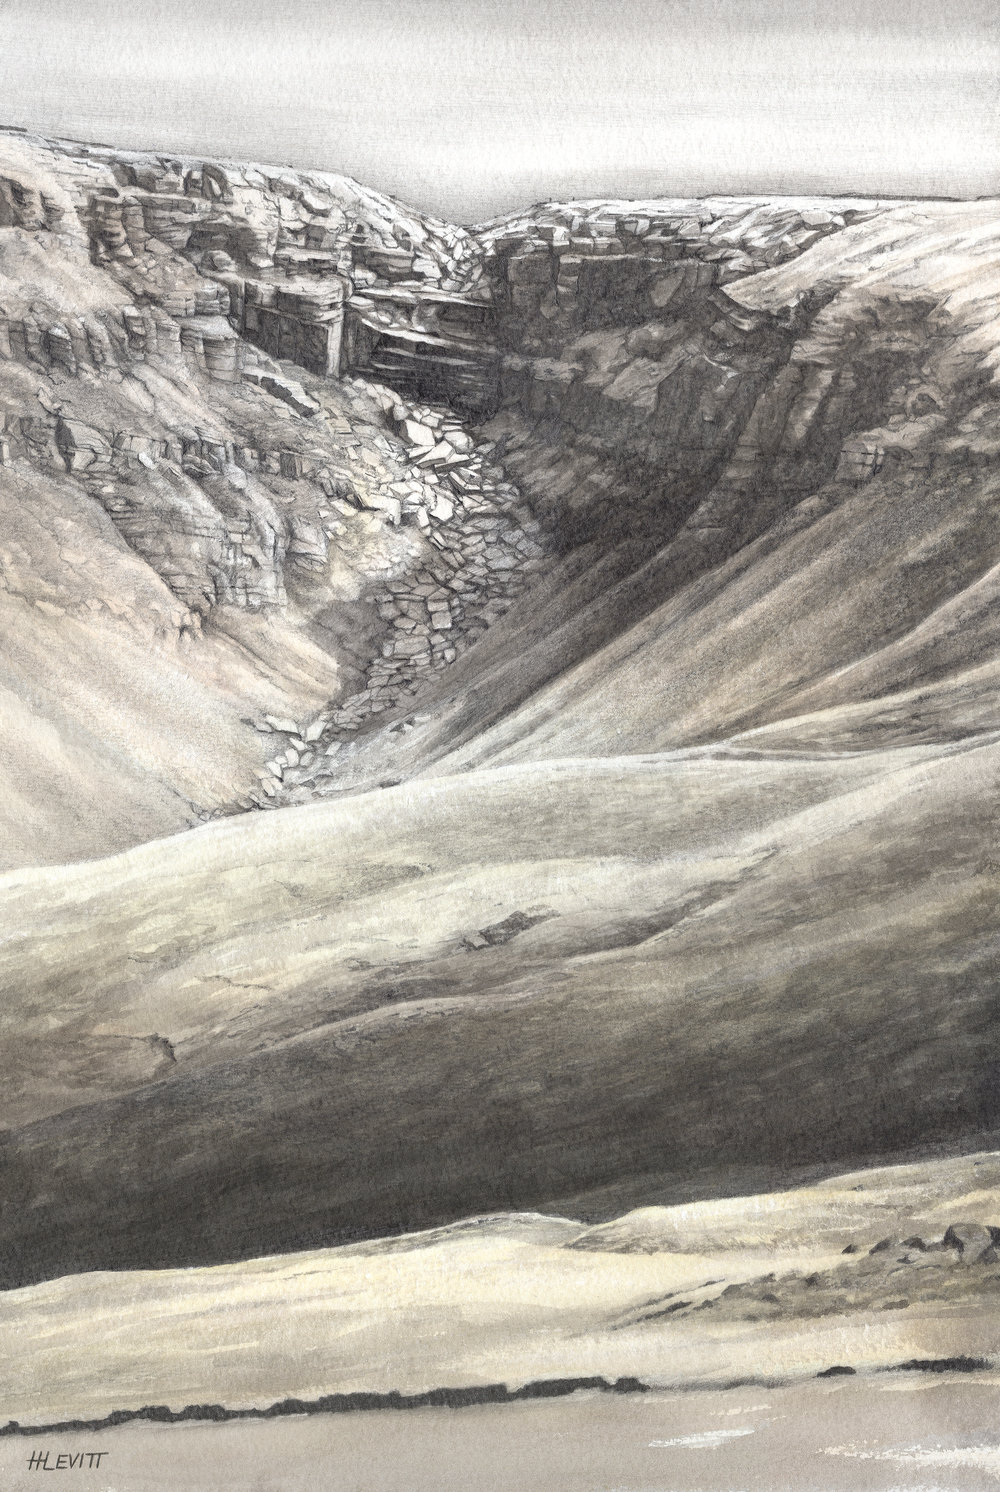 Kinder Downfall , Kinderscout,Derbyshire-on a dry day!              Graphite pencil and Ink wash